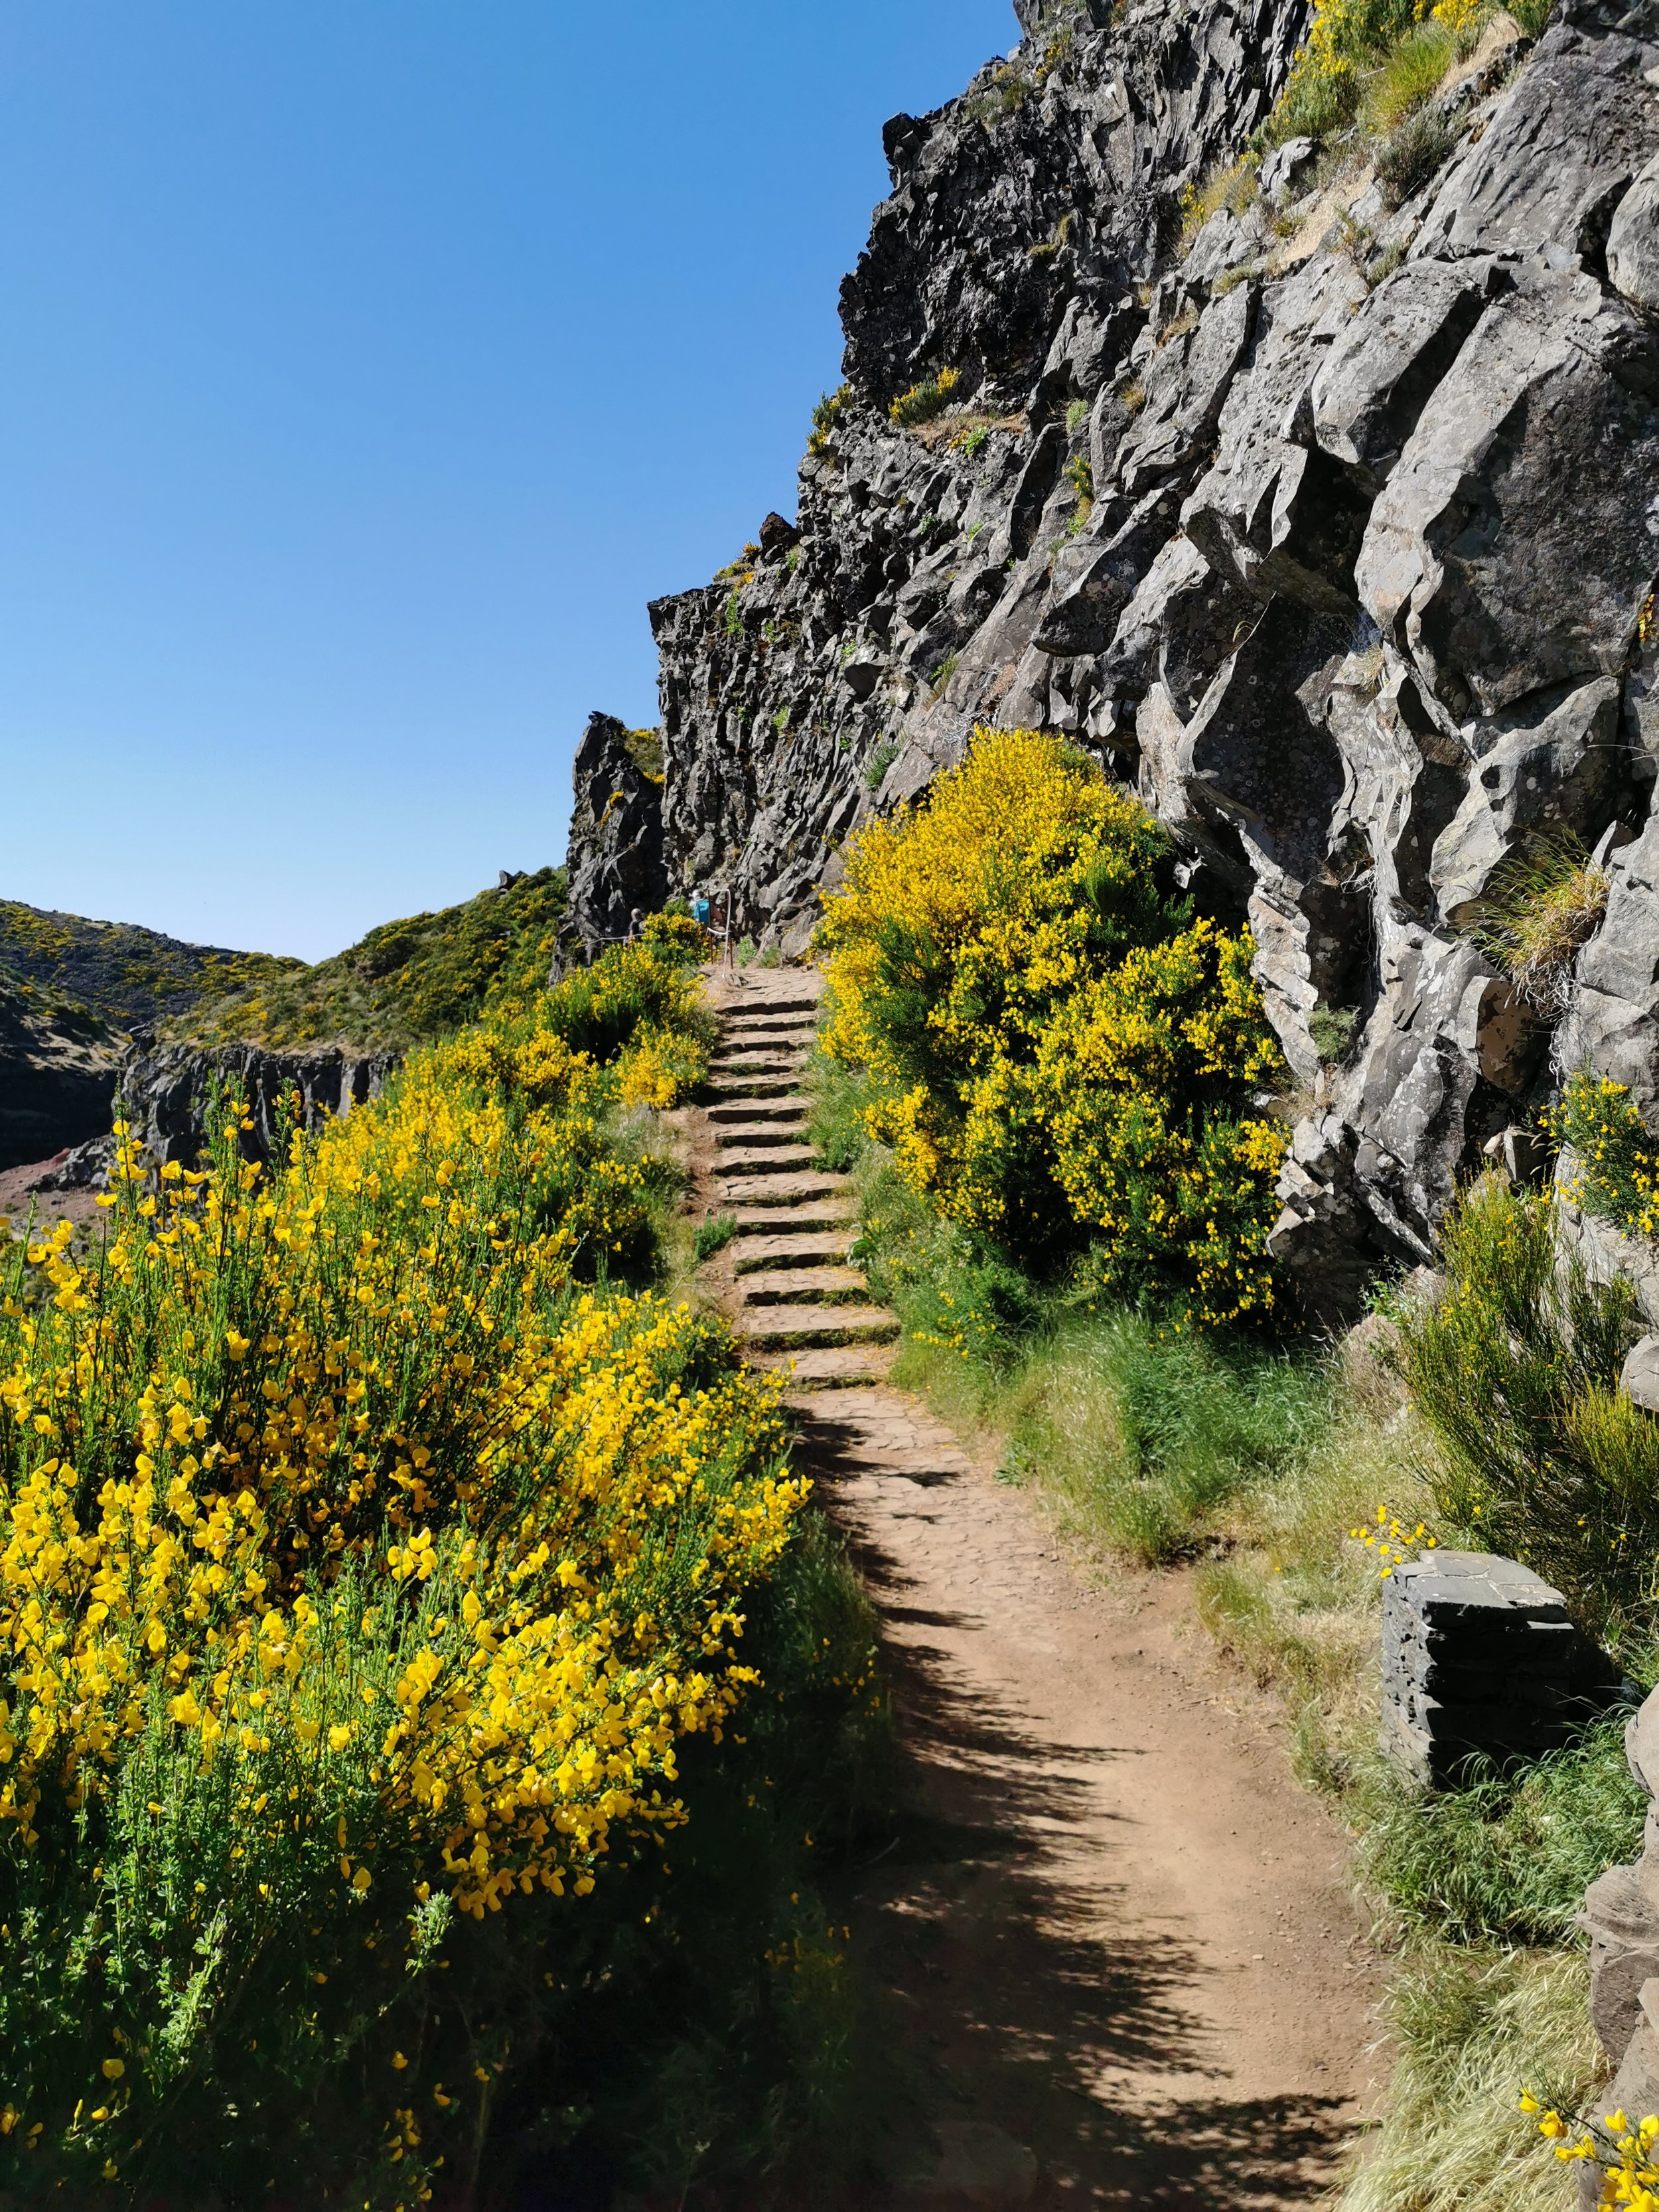 Beautiful paths lined with bright yellow flowers covering the sides of the mountains.